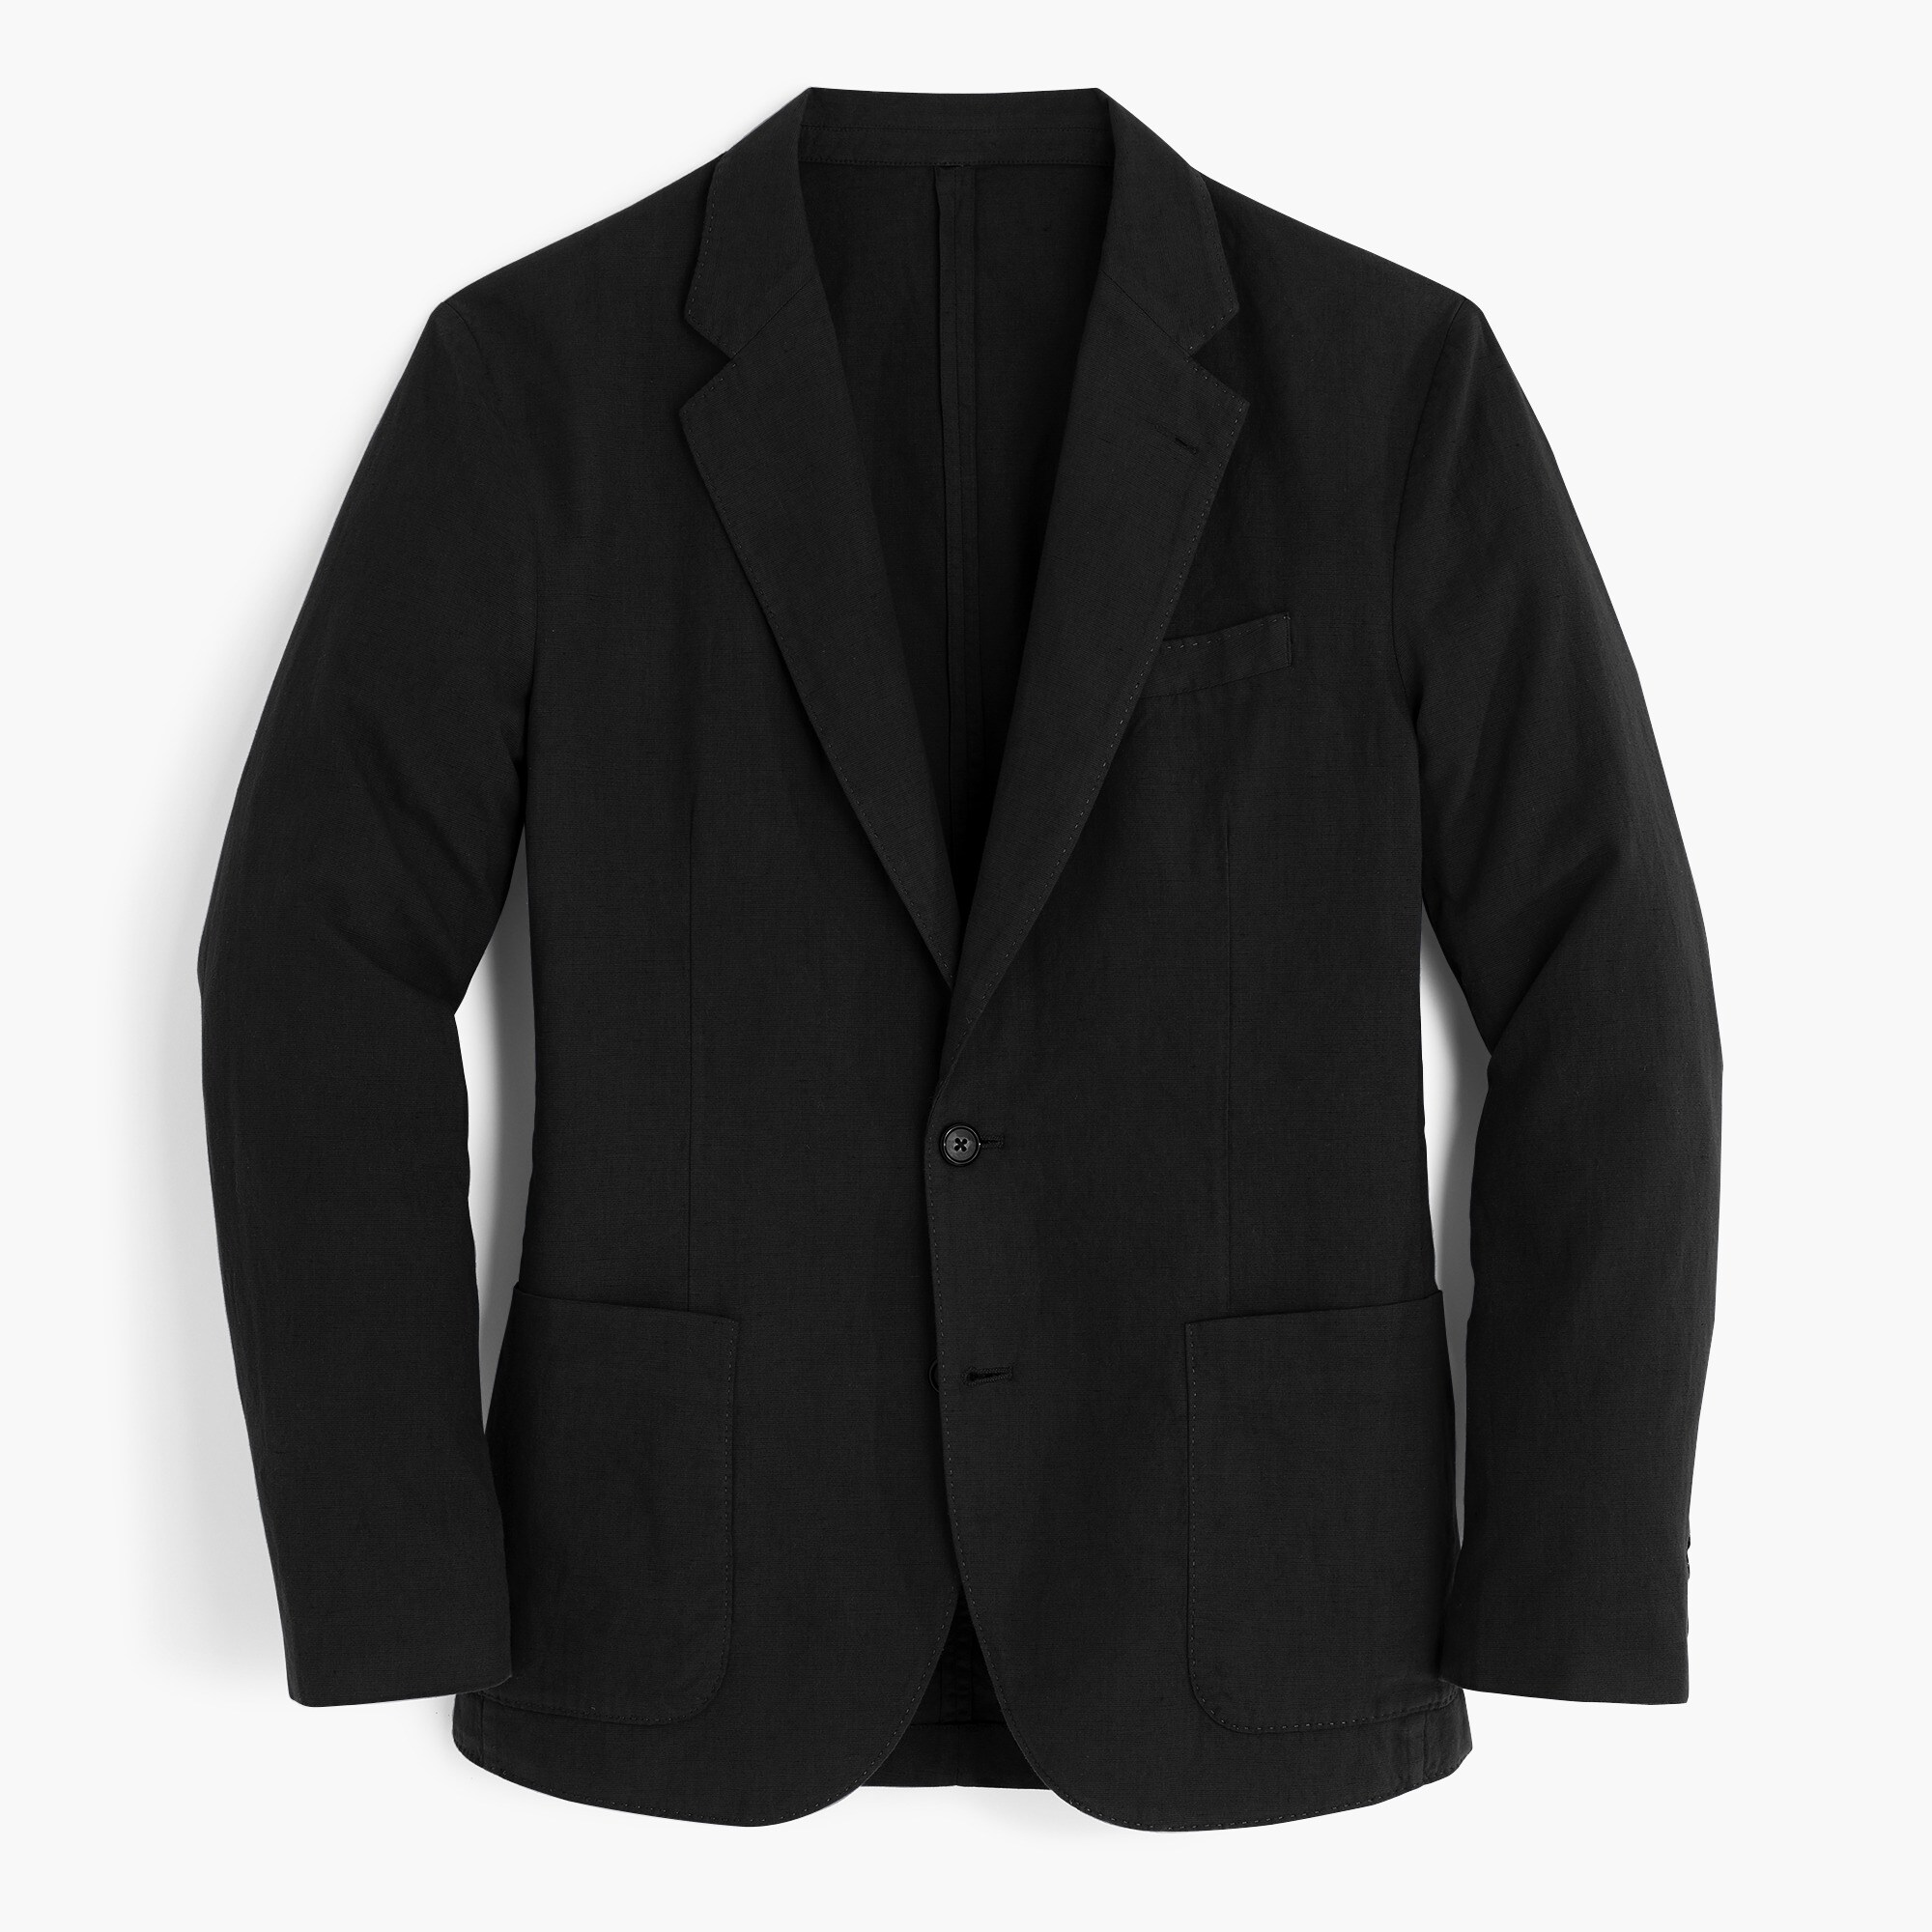 Unstructured Slim-fit Ludlow blazer in garment-dyed cotton-linen